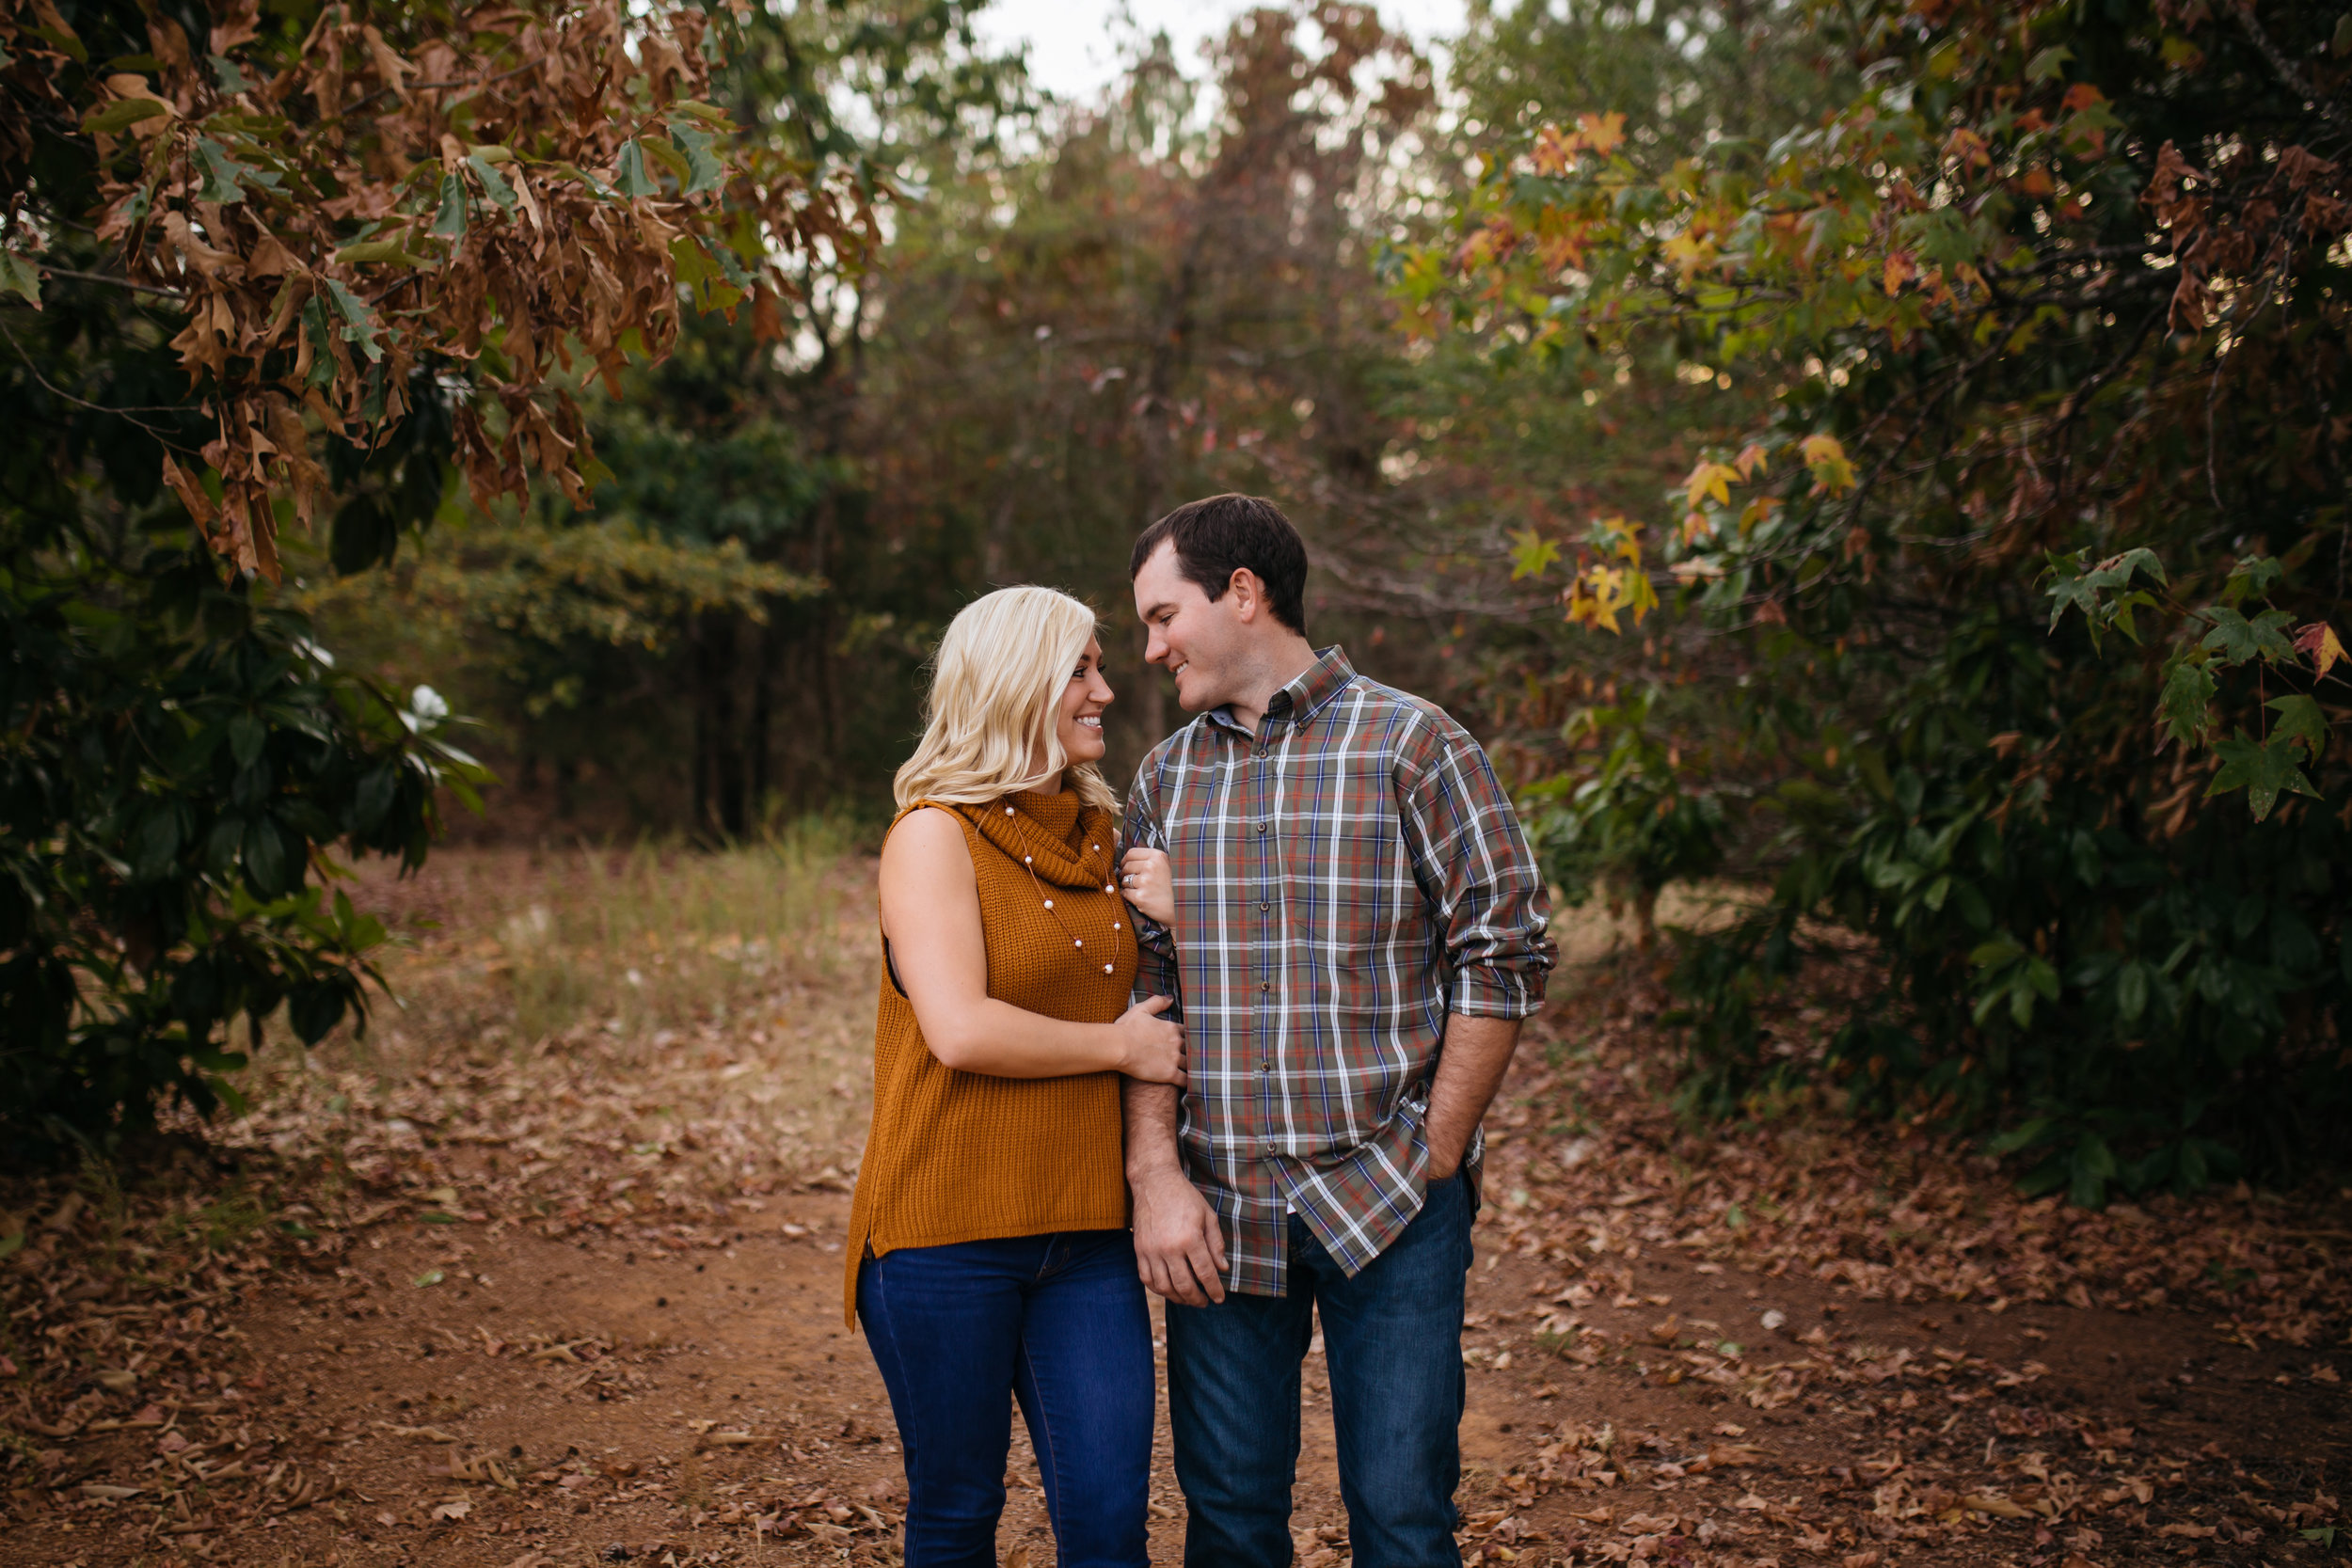 fall-family-photo-session-madison-huntsville-alabama-mary-colleen-photography-12